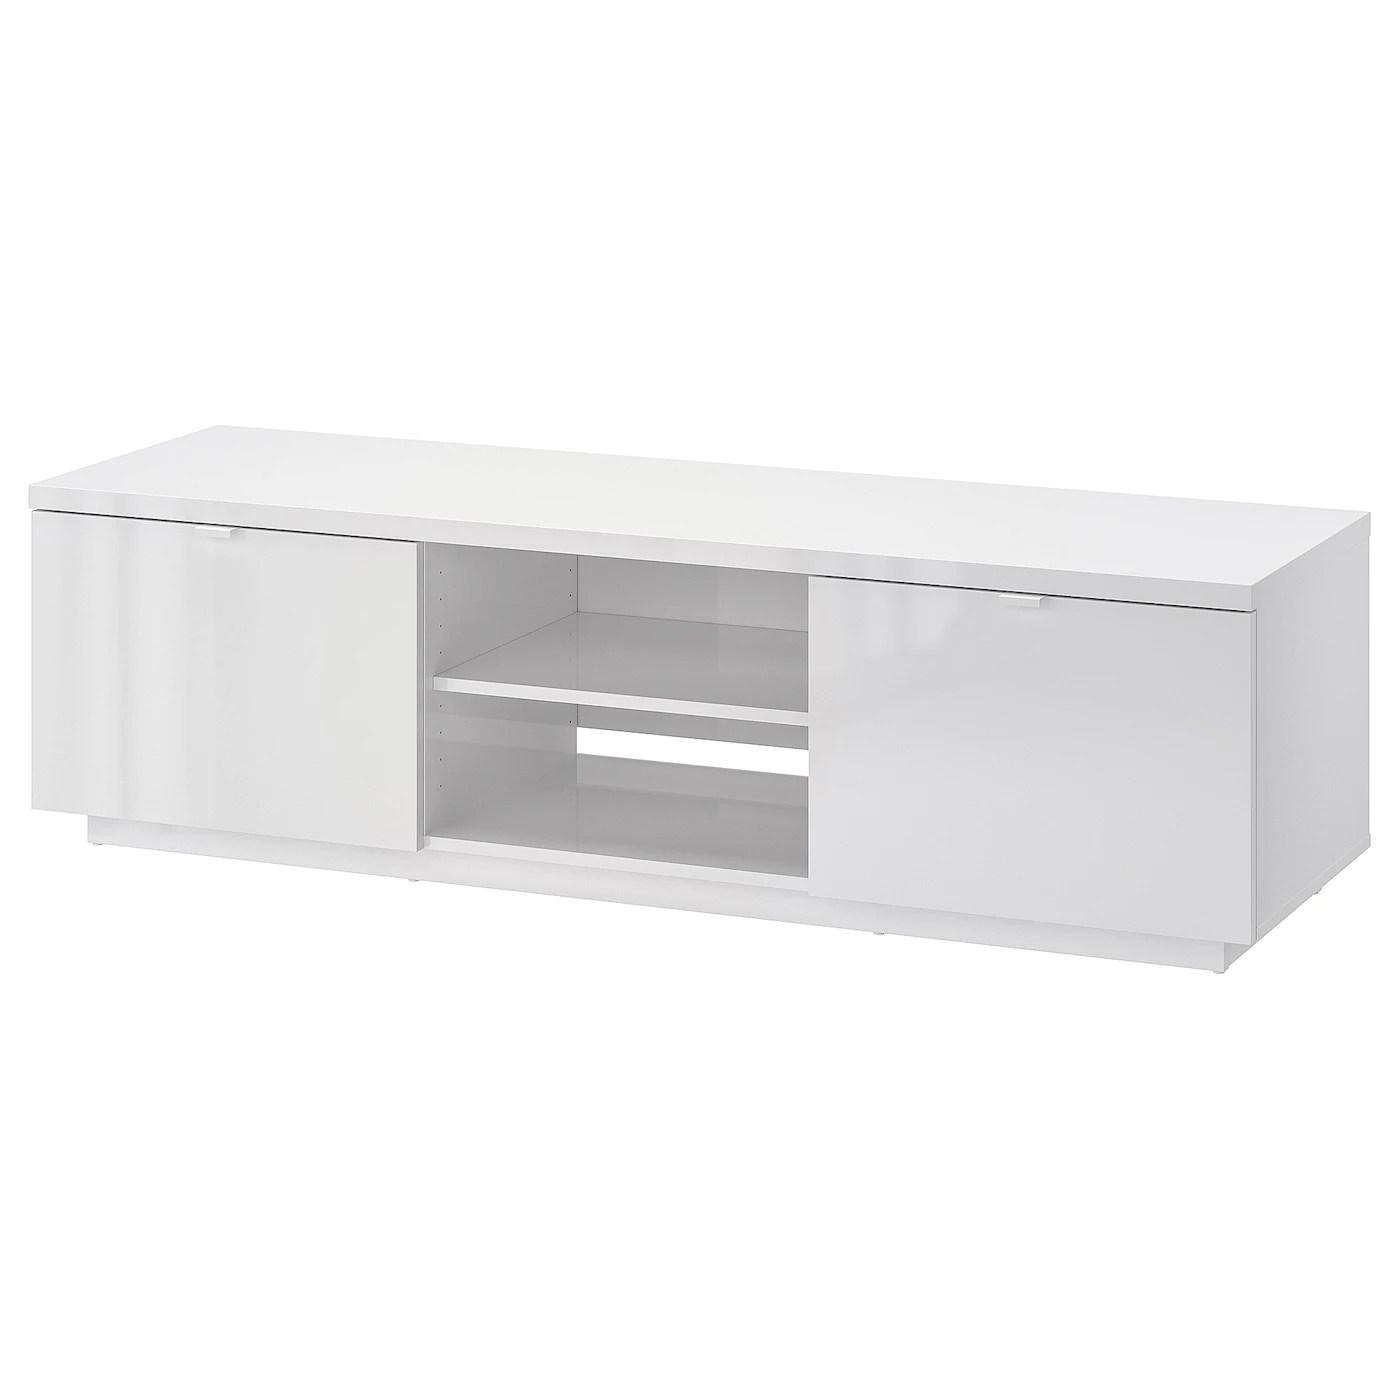 Muebles De Tv De Ikea ByÅs Mueble Tv Alto Brillo Blanco 160 X 42 X 45 Cm Ikea